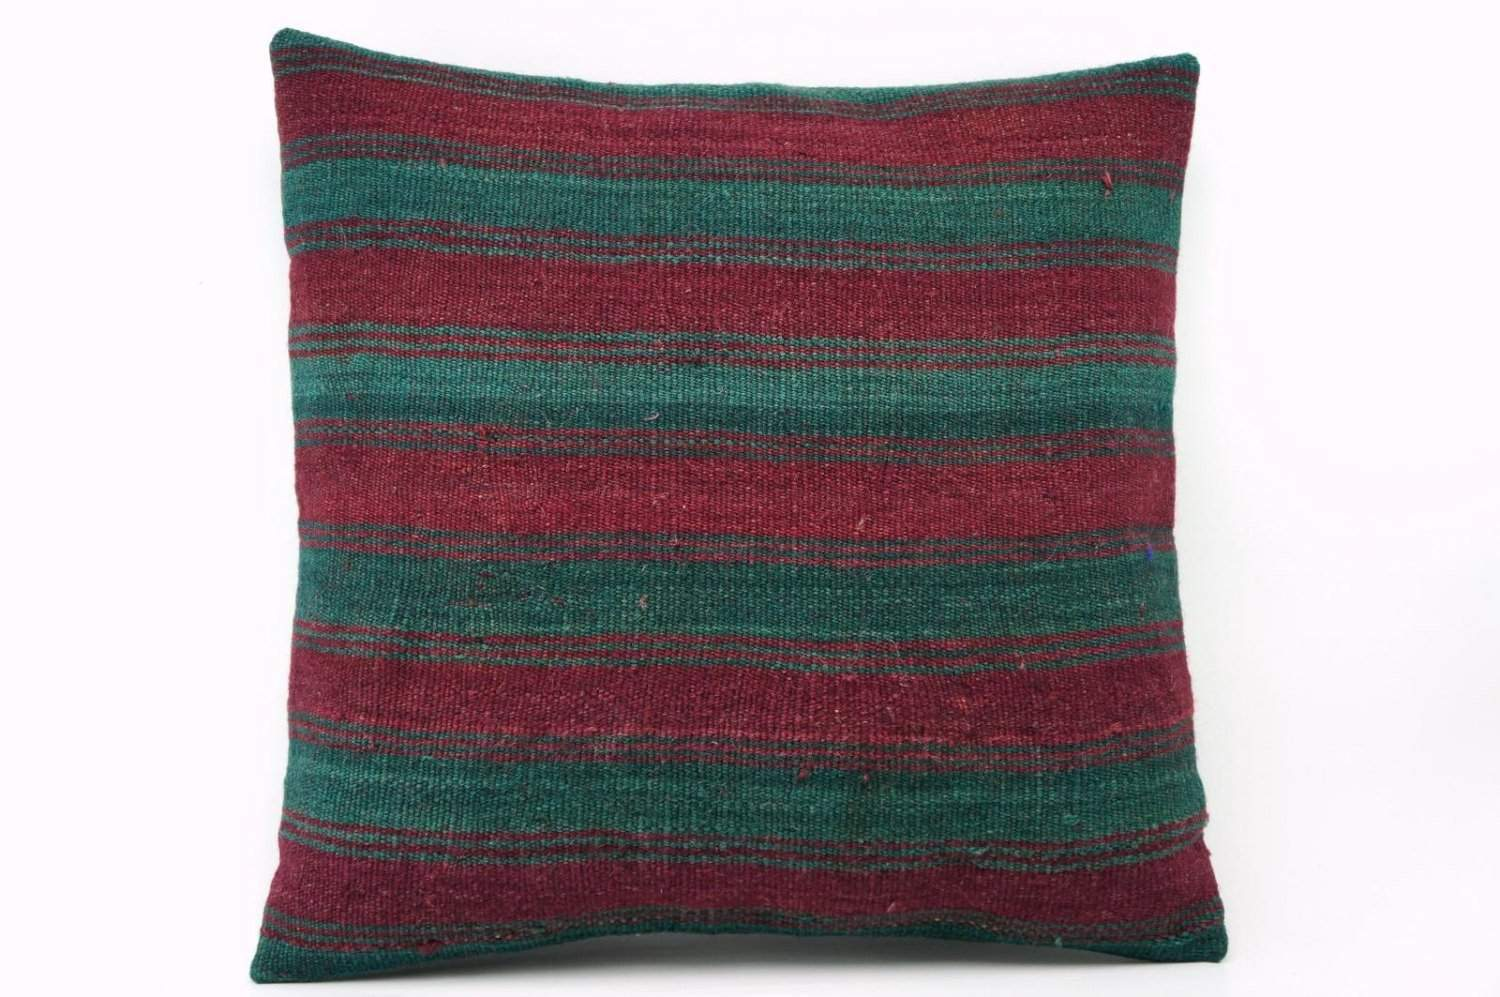 16x16 Vintage Hand Woven Kilim Pillow 569 green, teal, claret red striped